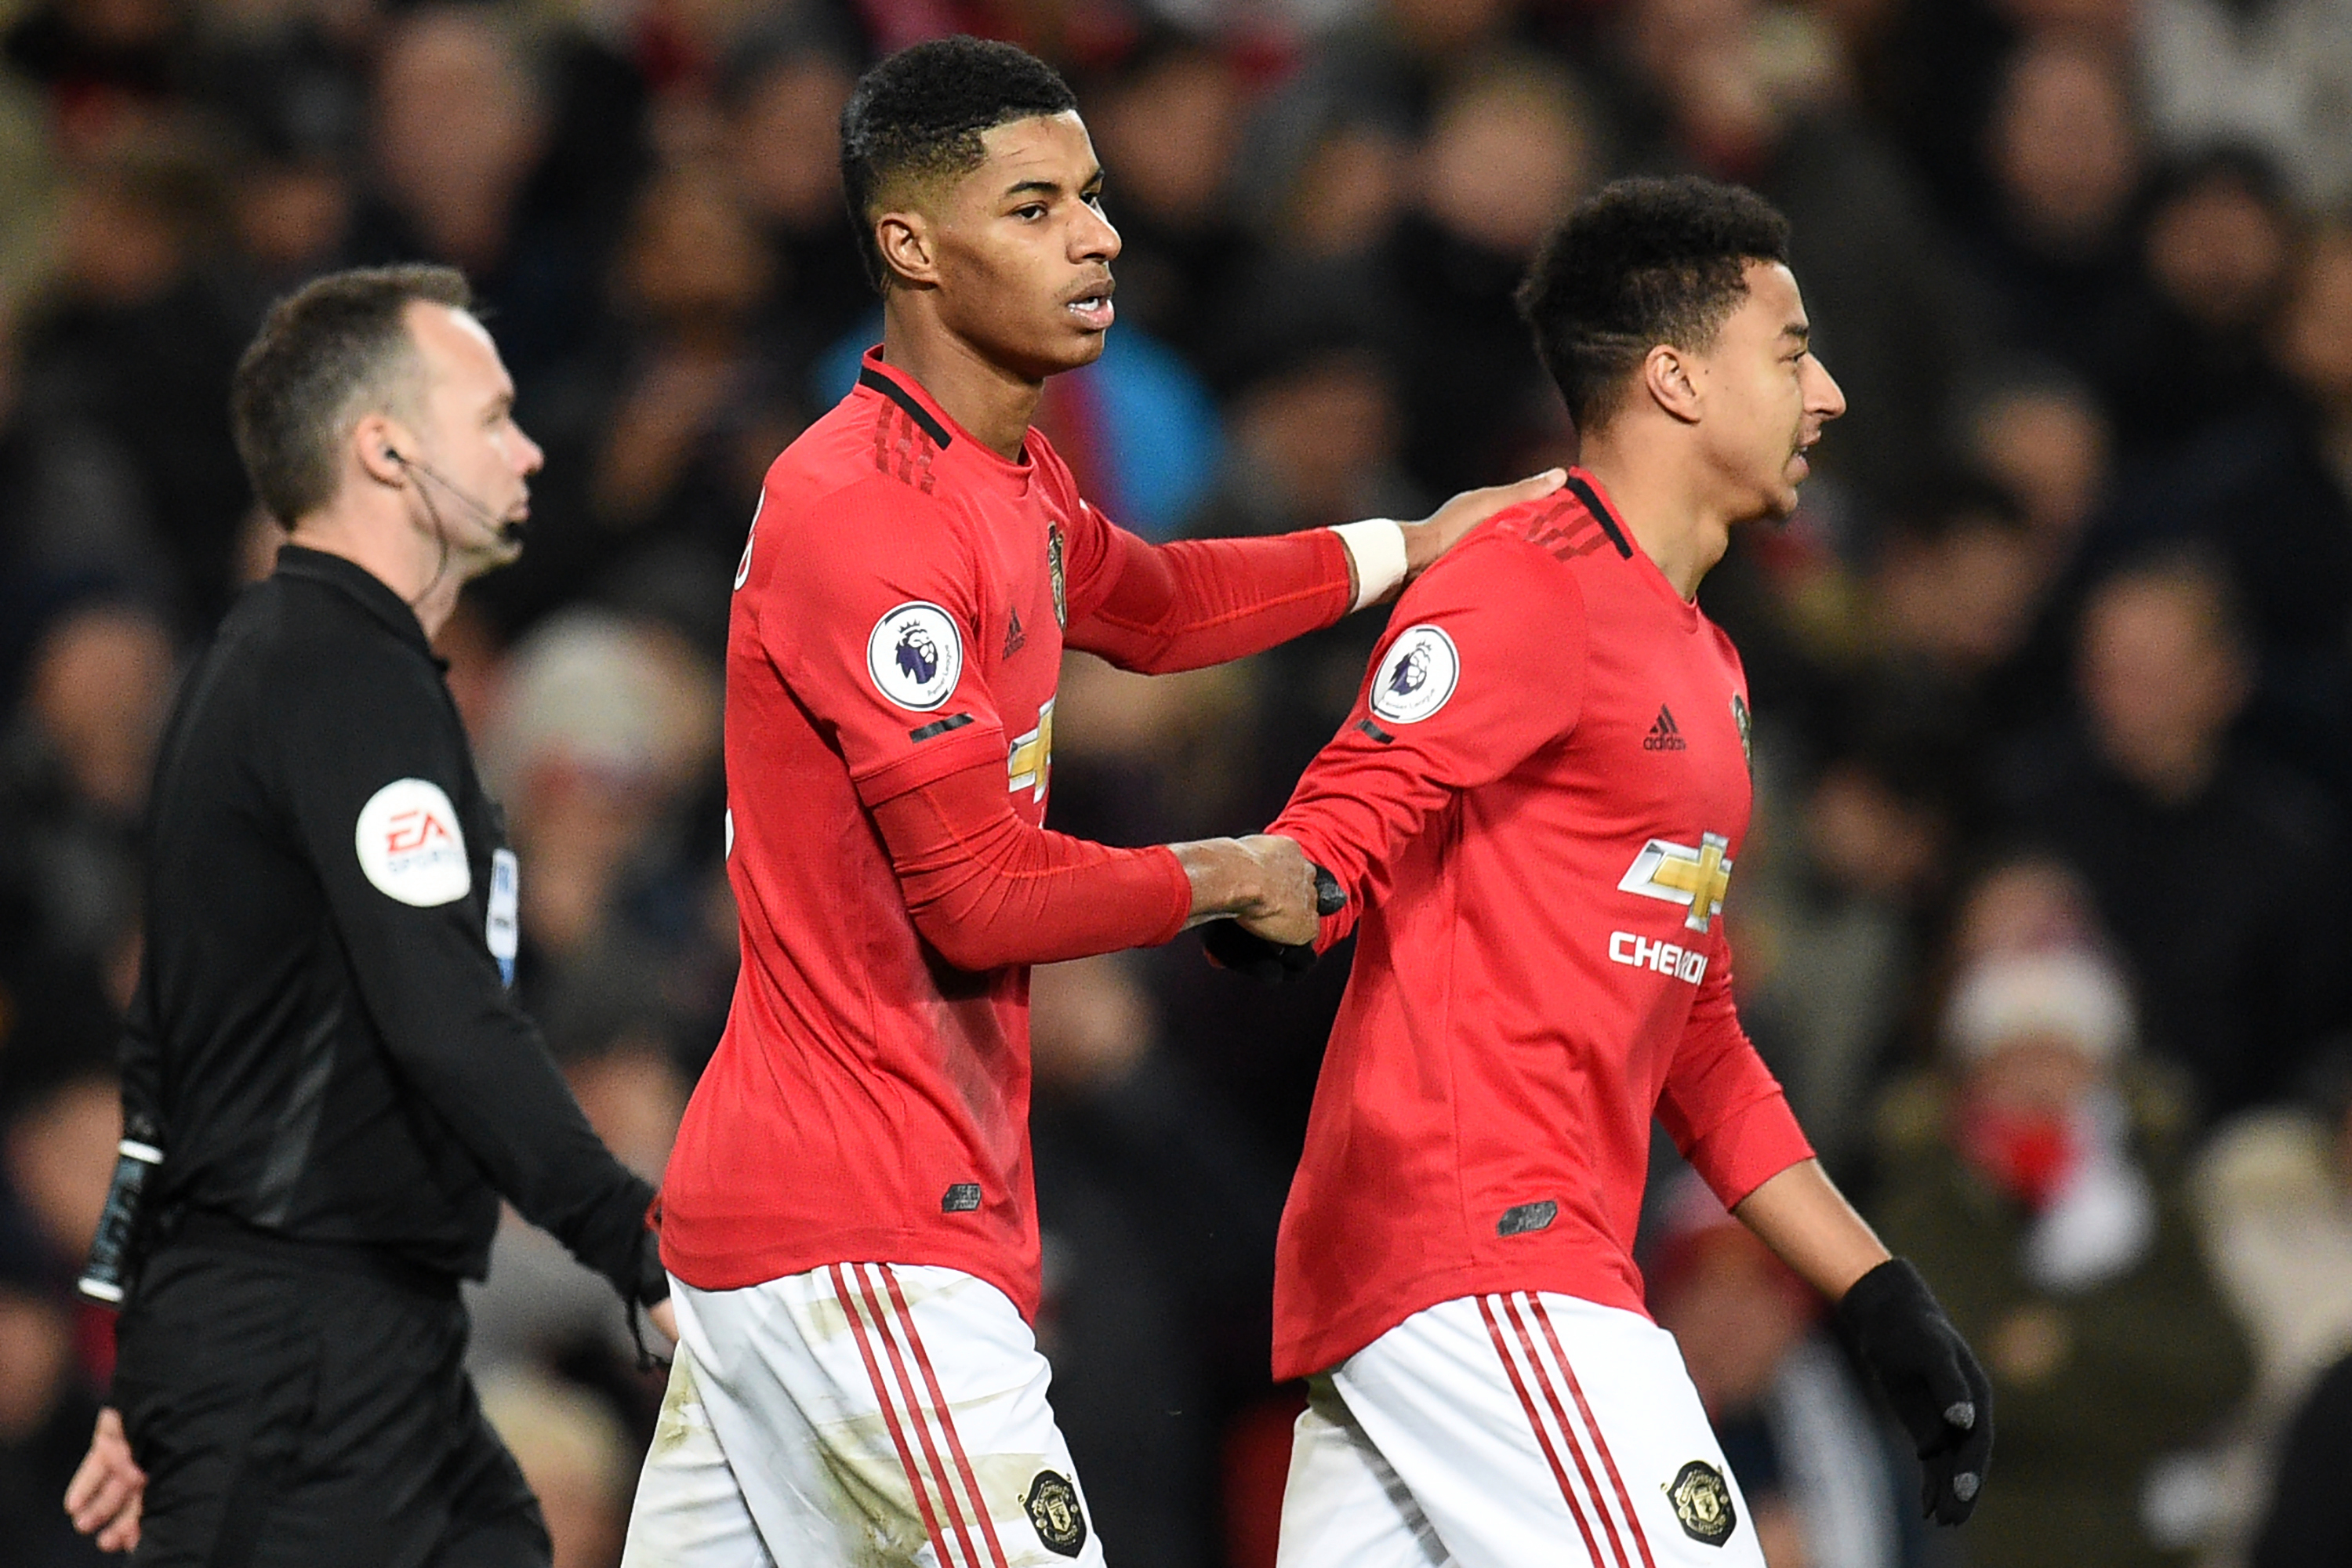 Marcus Rashford scored twice as Man United beat Spurs in December